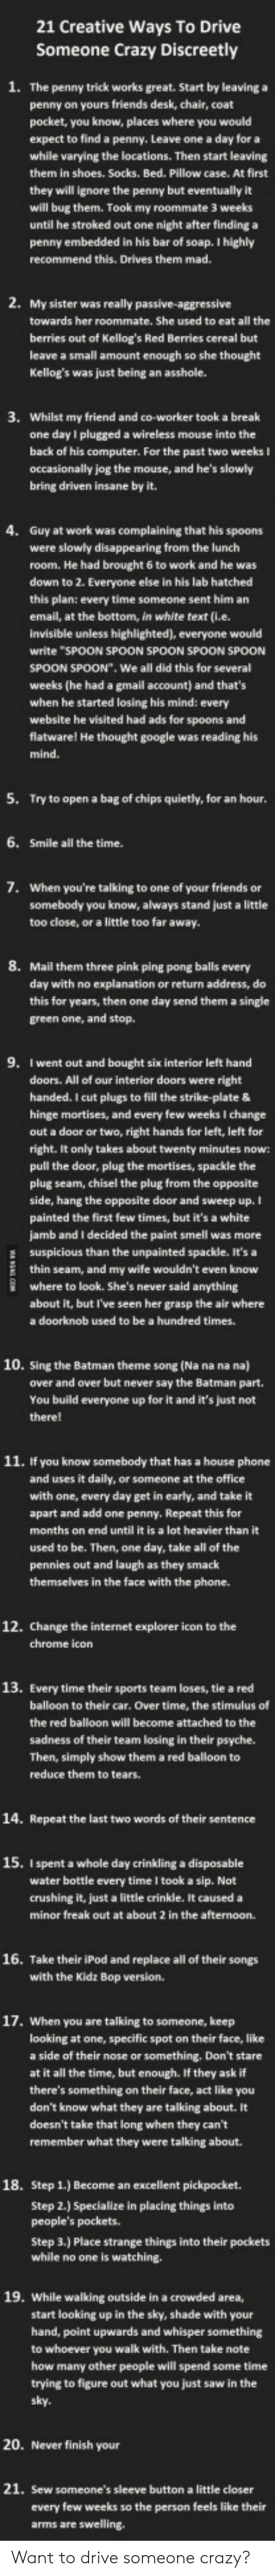 """Batman, Crazy, and Friends: 21 Creative Ways To Drive  Someone Crazy Discreetly  1.  The penny trick works great. Start by leaving a  penny on yours friends desk, chair, coat  pocket, you know, places where you would  expect to find a penny. Leave one a day for a  while varying the locations. Then start leaving  them in shoes. Socks. Bed. Pillow case. At first  they will ignore the penny but  will bug them. Took my roommate 3 weeks  until he stroked out one night after finding a  penny  recommend this. Drives them mad.  embedded in his bar of soap. I highly  towards her roommate. She used to eat all the  berries out of Kellog's Red Berries cereal but  leave a small amount enough so she thought  3.  Whilst my friend and co-worker took a break  one day I plugged a wireless mouse into the  back of his computer. For the past two weeks I  occasionally jog the mouse, and he's slowly  bring driven insane by it.  4.  Guy at work was complaining that his spoons  were slowly disappearing from the lunch  room. He had brought 6 to work and he was  down to 2. Everyone else in his lab hatched  this plan: every time someone sent him an  email, at the bottom, in white text (i.e.  would  write """"SPOON SPOON SPOON SPOON SPOON  SPOON SPOON"""". We all did this for several  weeks (he had a gmail account) and that's  when he started losing his mind: every  website he visited had ads for  spoons and  his  5.  Try to open a bag of chips quietly, for an hour.  6.  Smile all the time.  7.  When you're talking to one of your friends or  somebody you know, always stand just a little  too close, or a little too far away.  8.  Mail them three pink ping pong balls every  day with no explanation or return address, do  this for years, then one day send them a single  green one, and stop.  9.  I went out and bought six interior left hand  doors. All of our interior doors were right  handed. I cut plugs to fill the strike-plate &  hinge mortises, and every few weeks I change  out a door or two, right ha"""